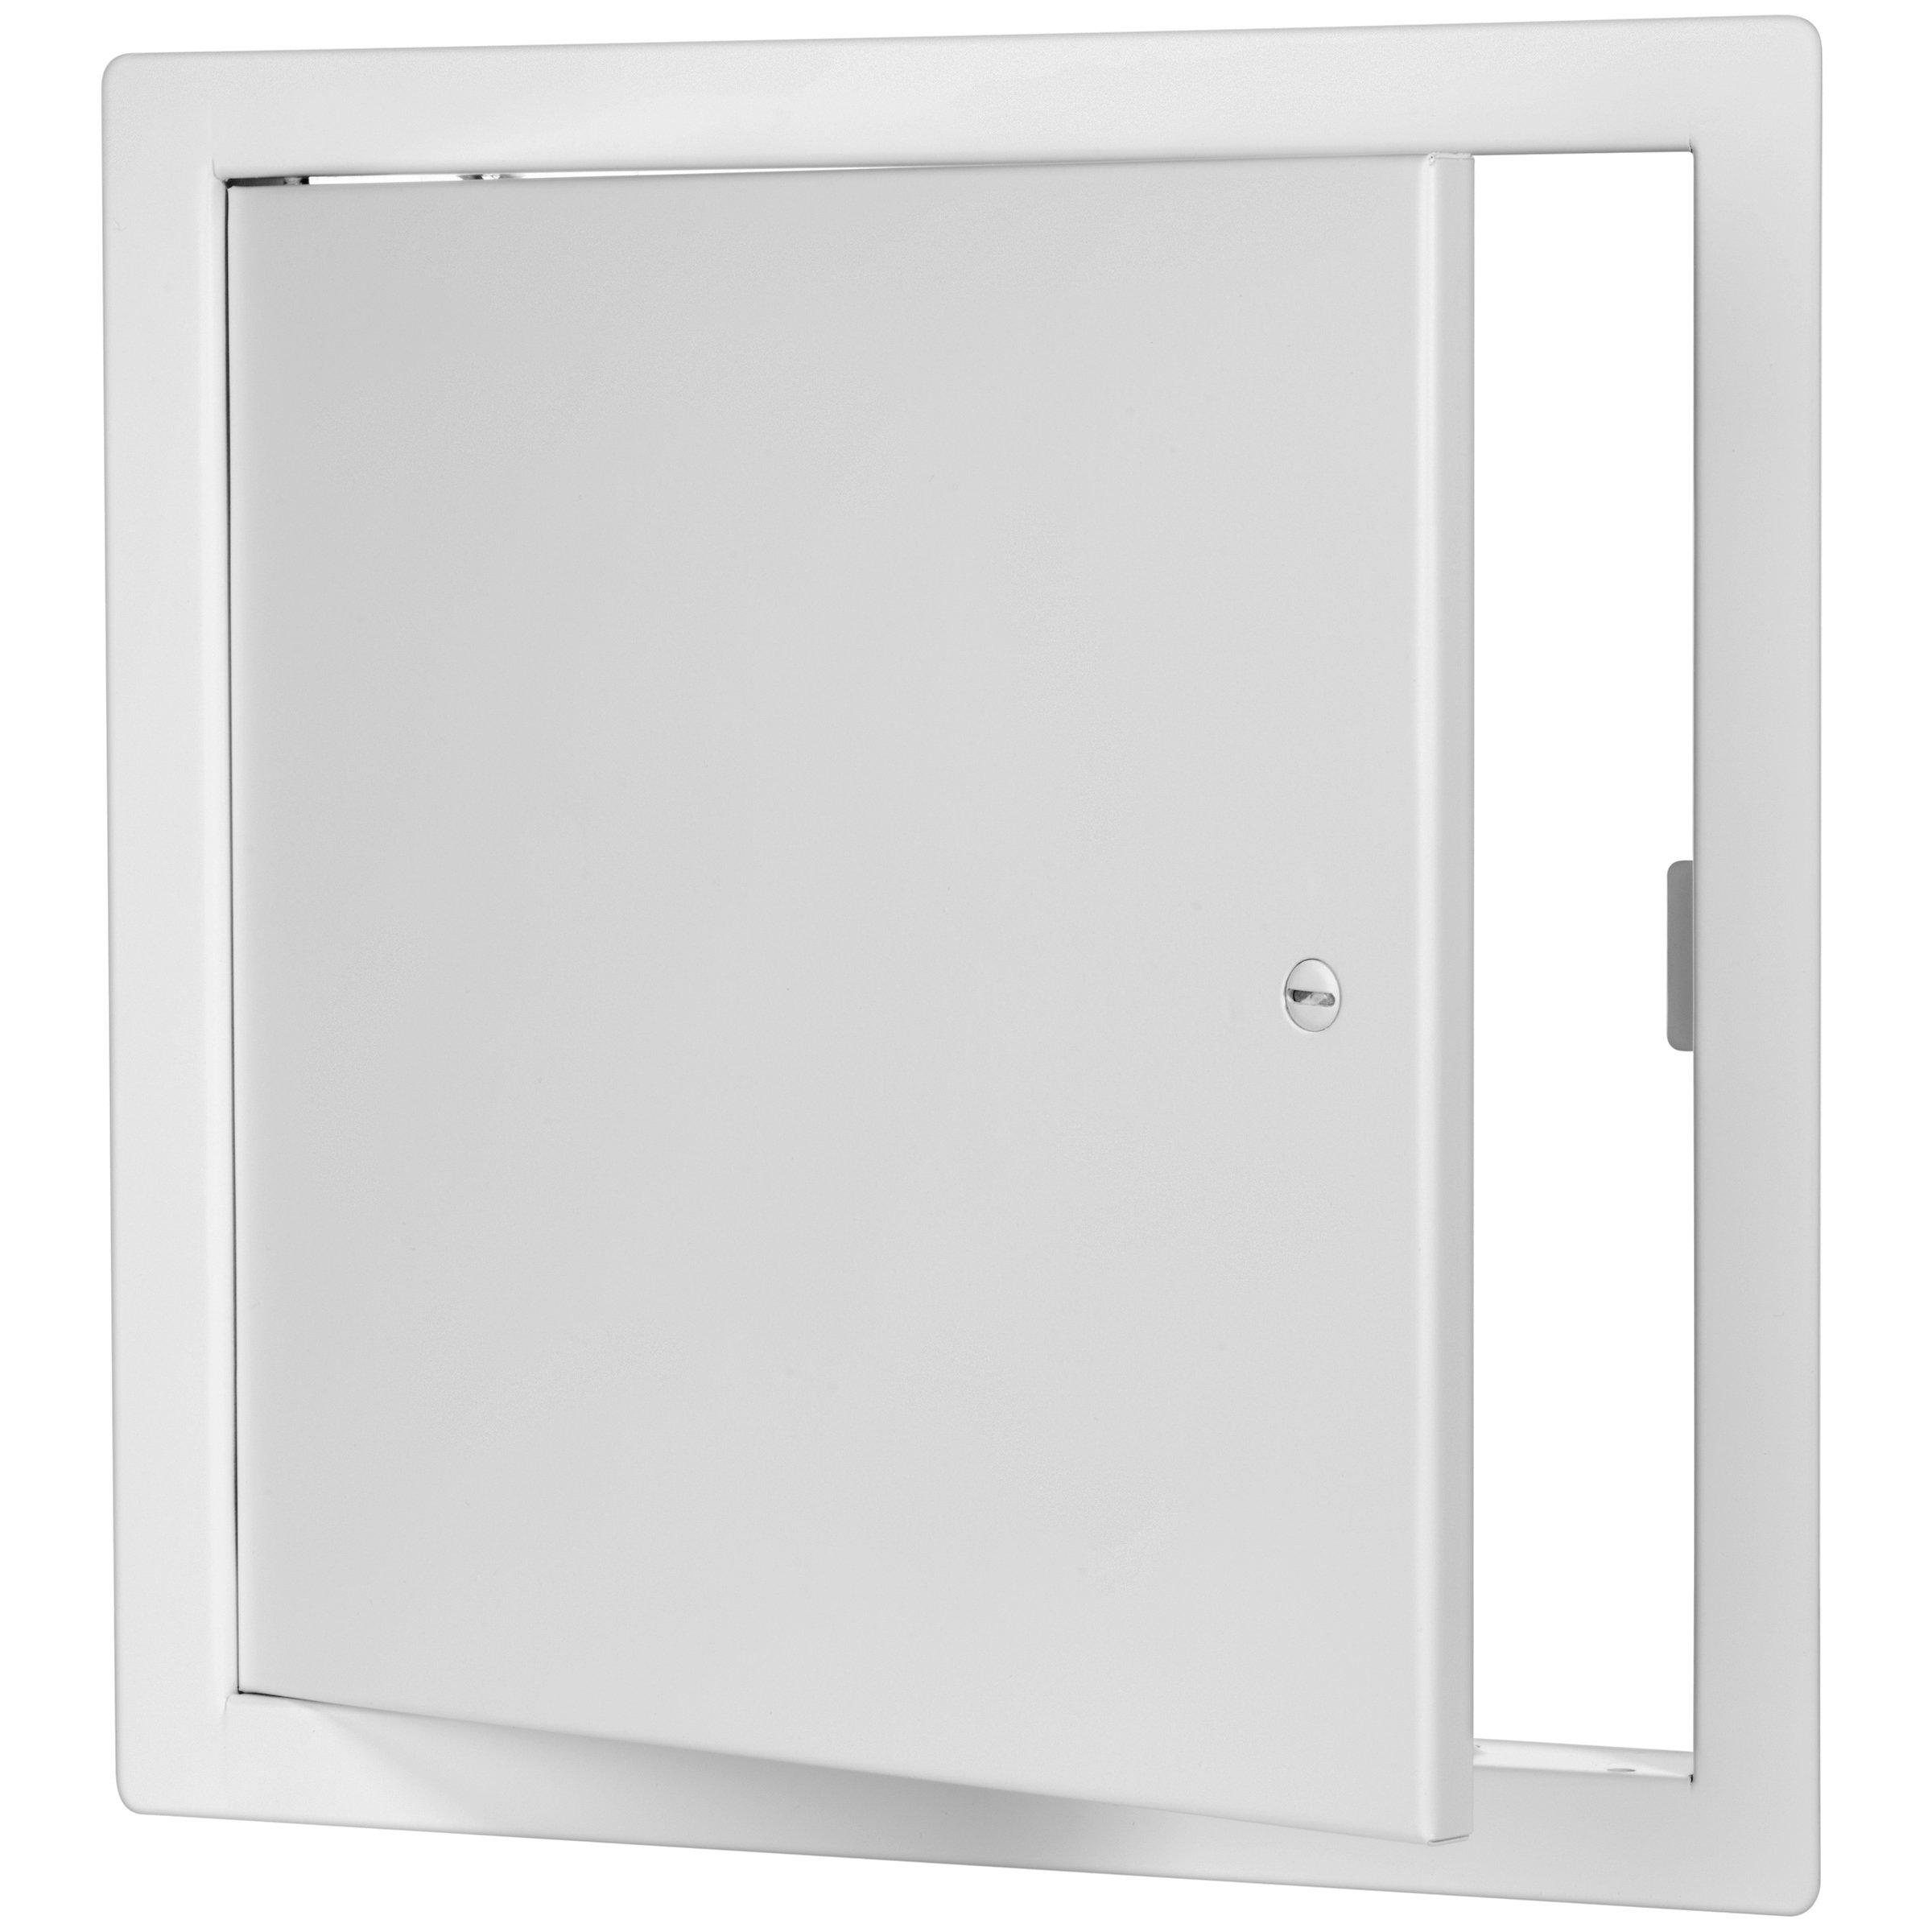 Premier 2002 Series Steel Access Door, 24 x 24 Flush Universal Mount, White (Screwdriver Latch) by Premier Access Doors